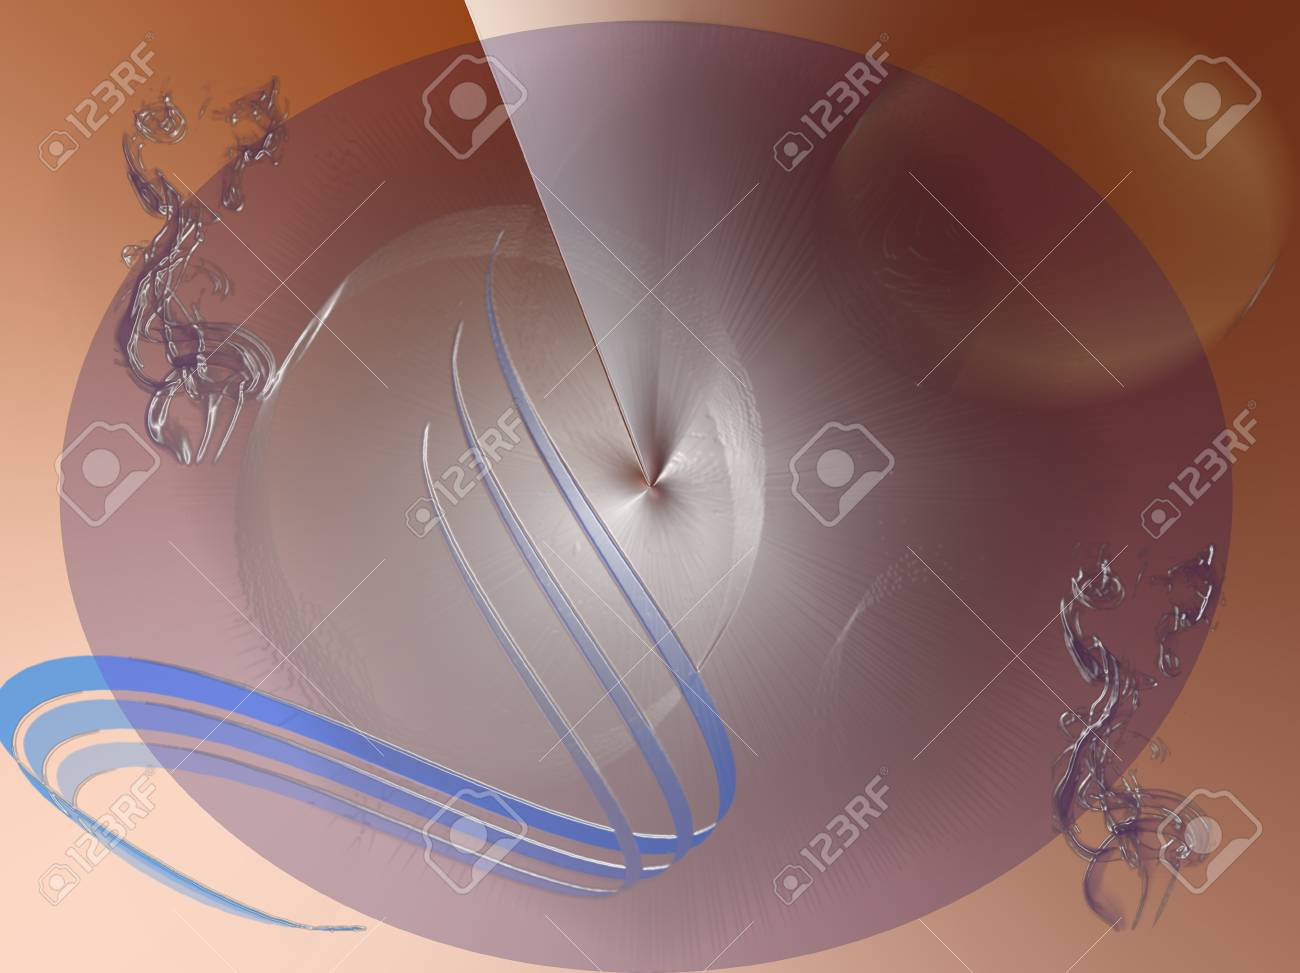 Flames on abstract background Stock Photo - 12378392